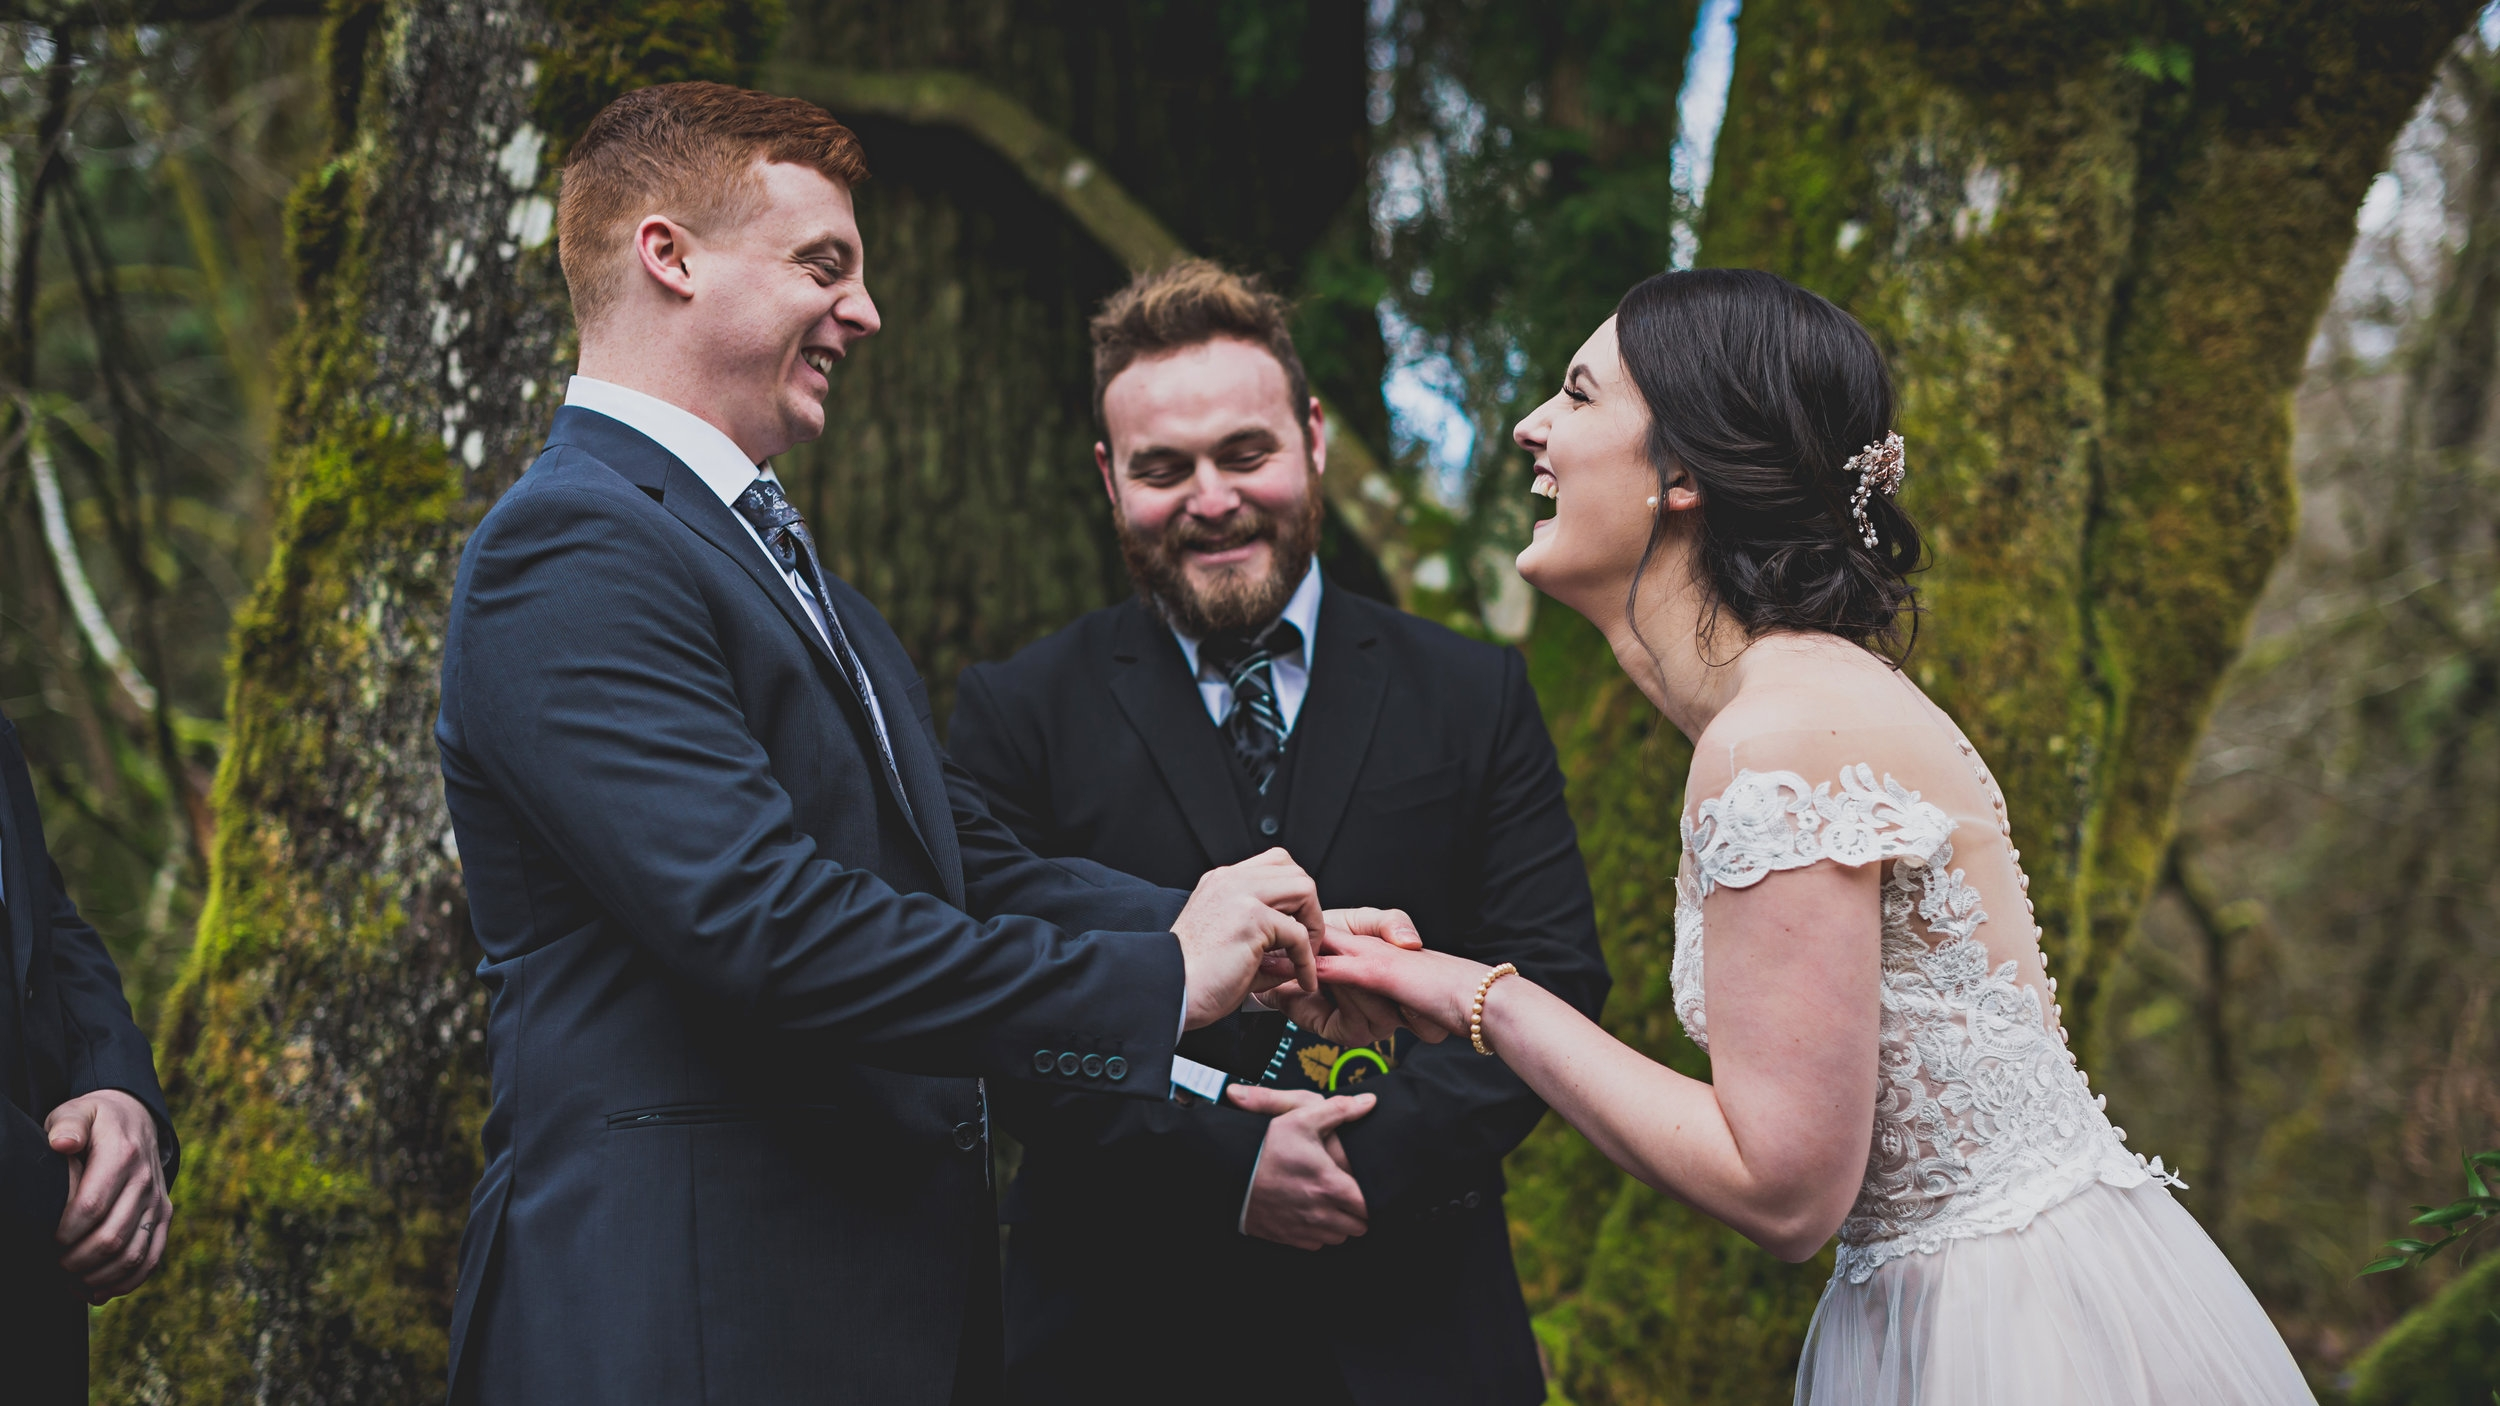 Kalie & Aric Wedding -179.jpg